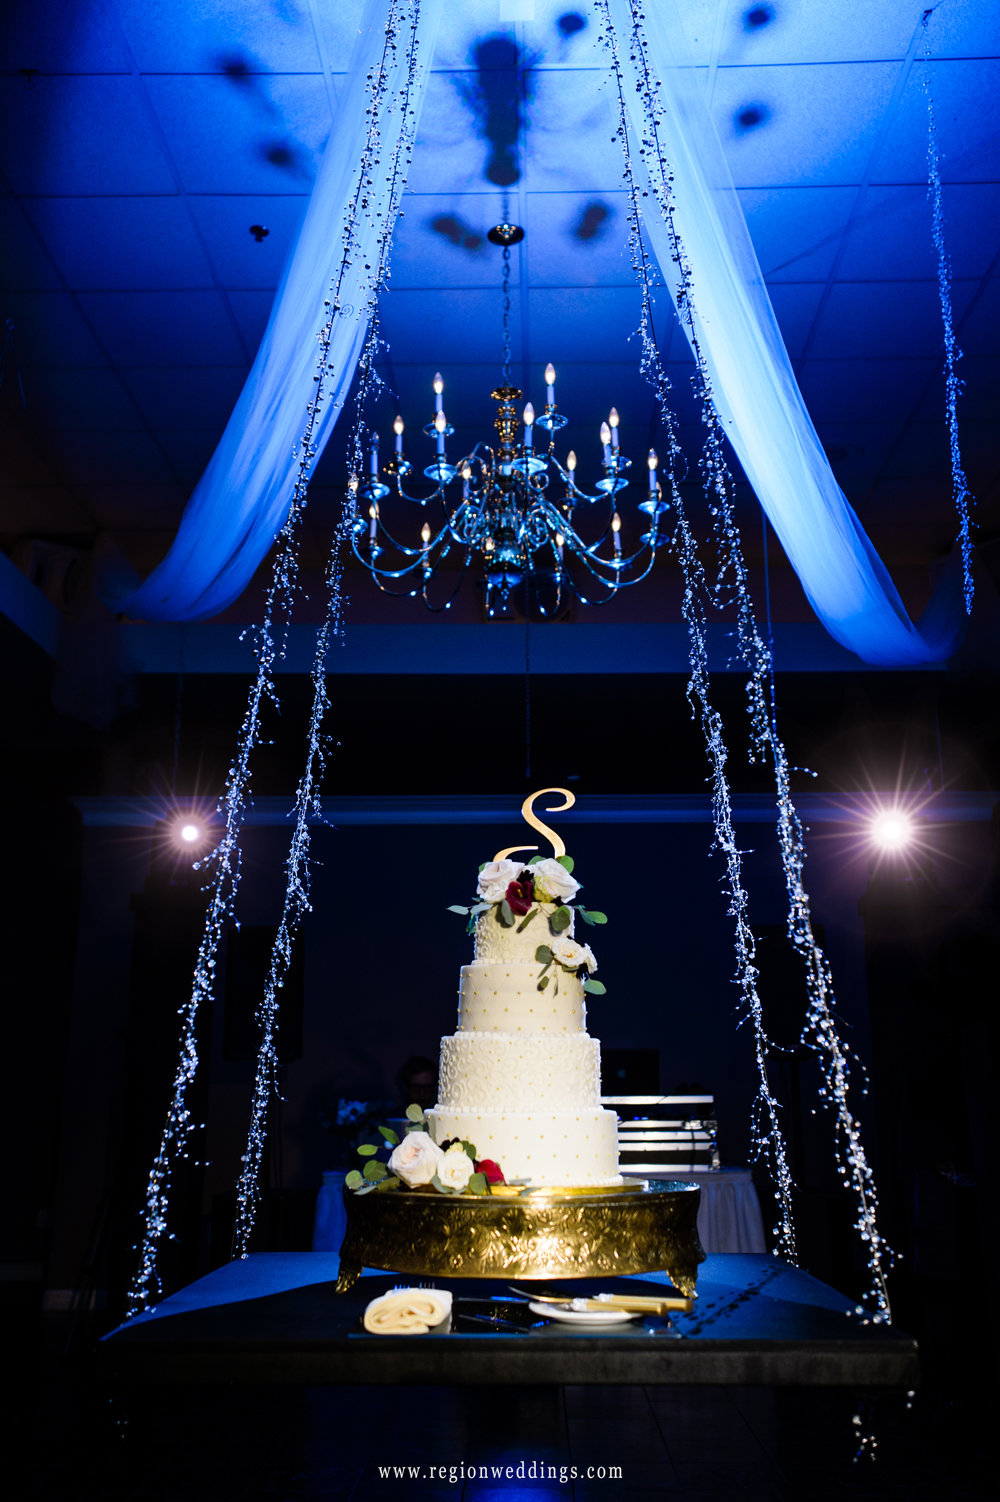 A wedding cake is suspended from the ceiling at Aberdeen Manor.